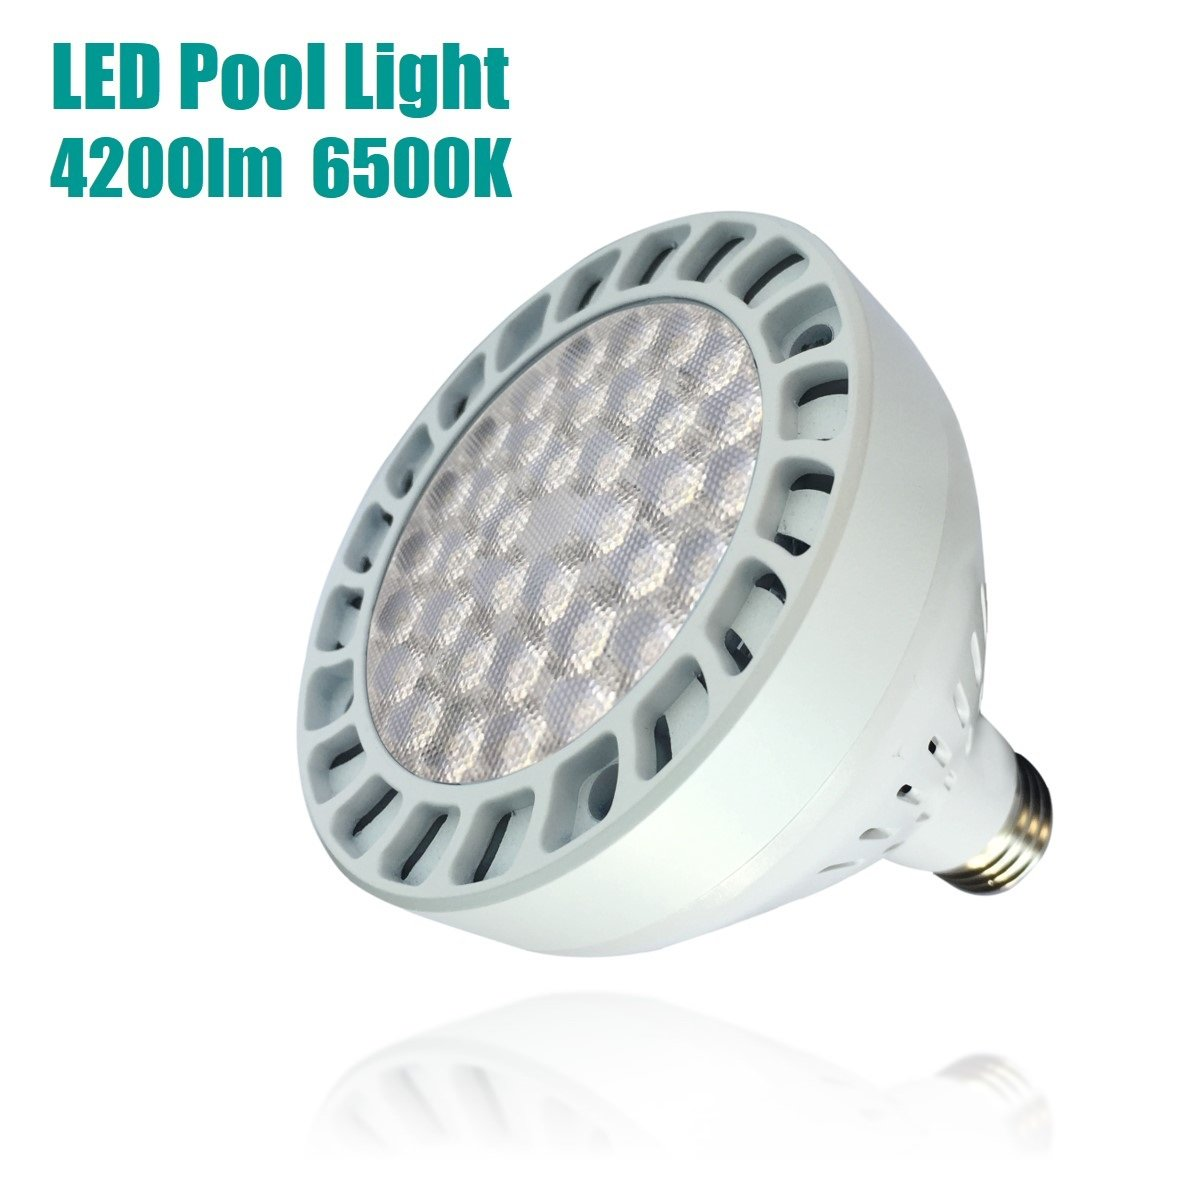 TOVEENEN LED Pool Light 45W 4200lm White Light 6500K Replacement for Incandescent Bulbs in Pool Light (120V,45W)